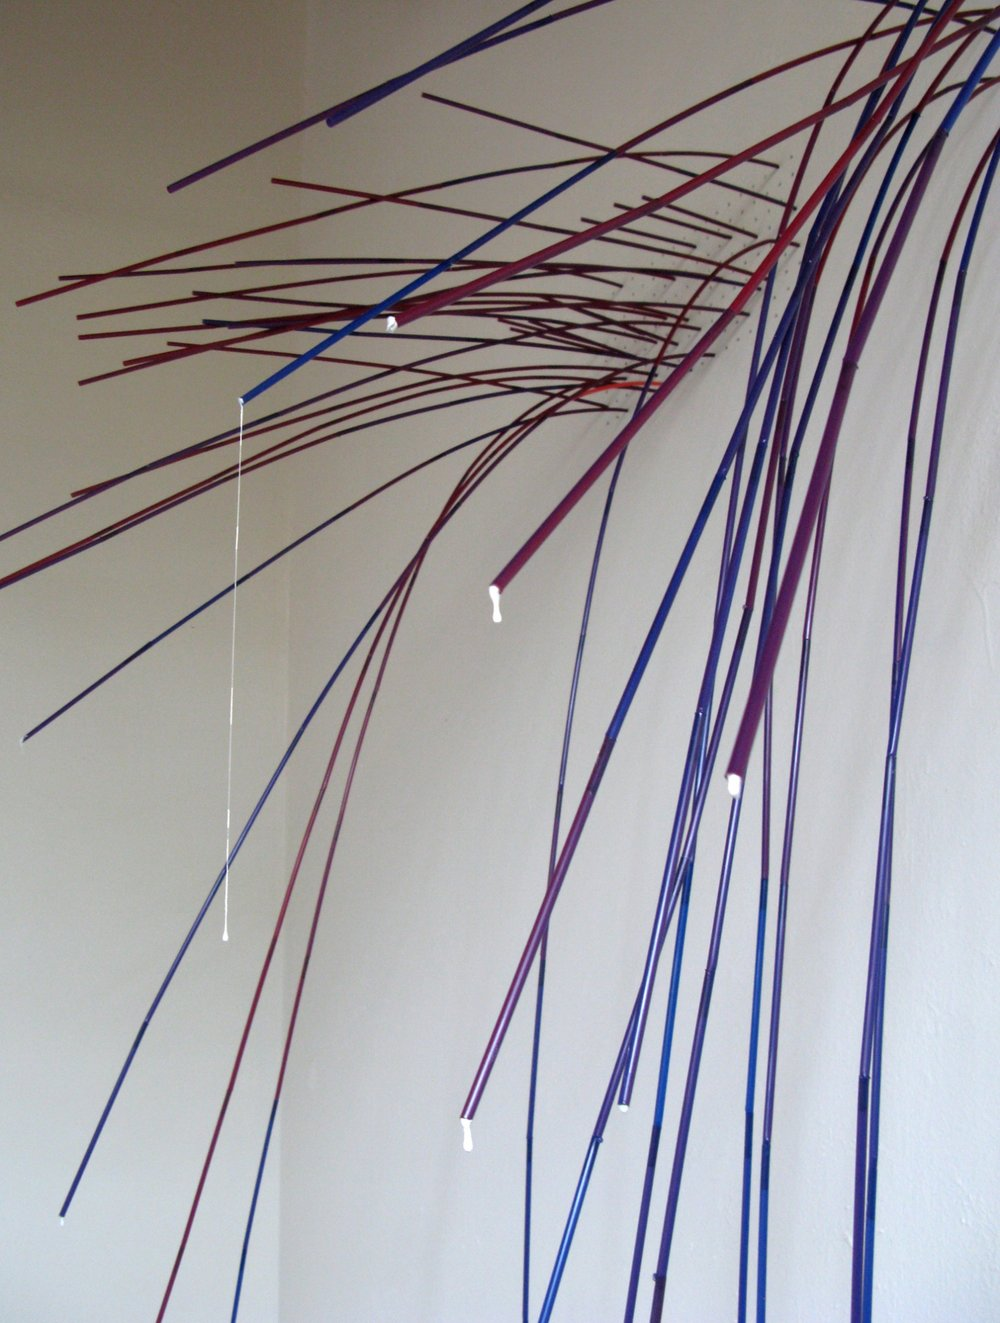 Drip (detail)  Drilled holes in sheetrock wall, drinking straws, house paint, hotmelt glue; installation at Caldera Arts Center, Sisters, OR 12' x 5'x 3'